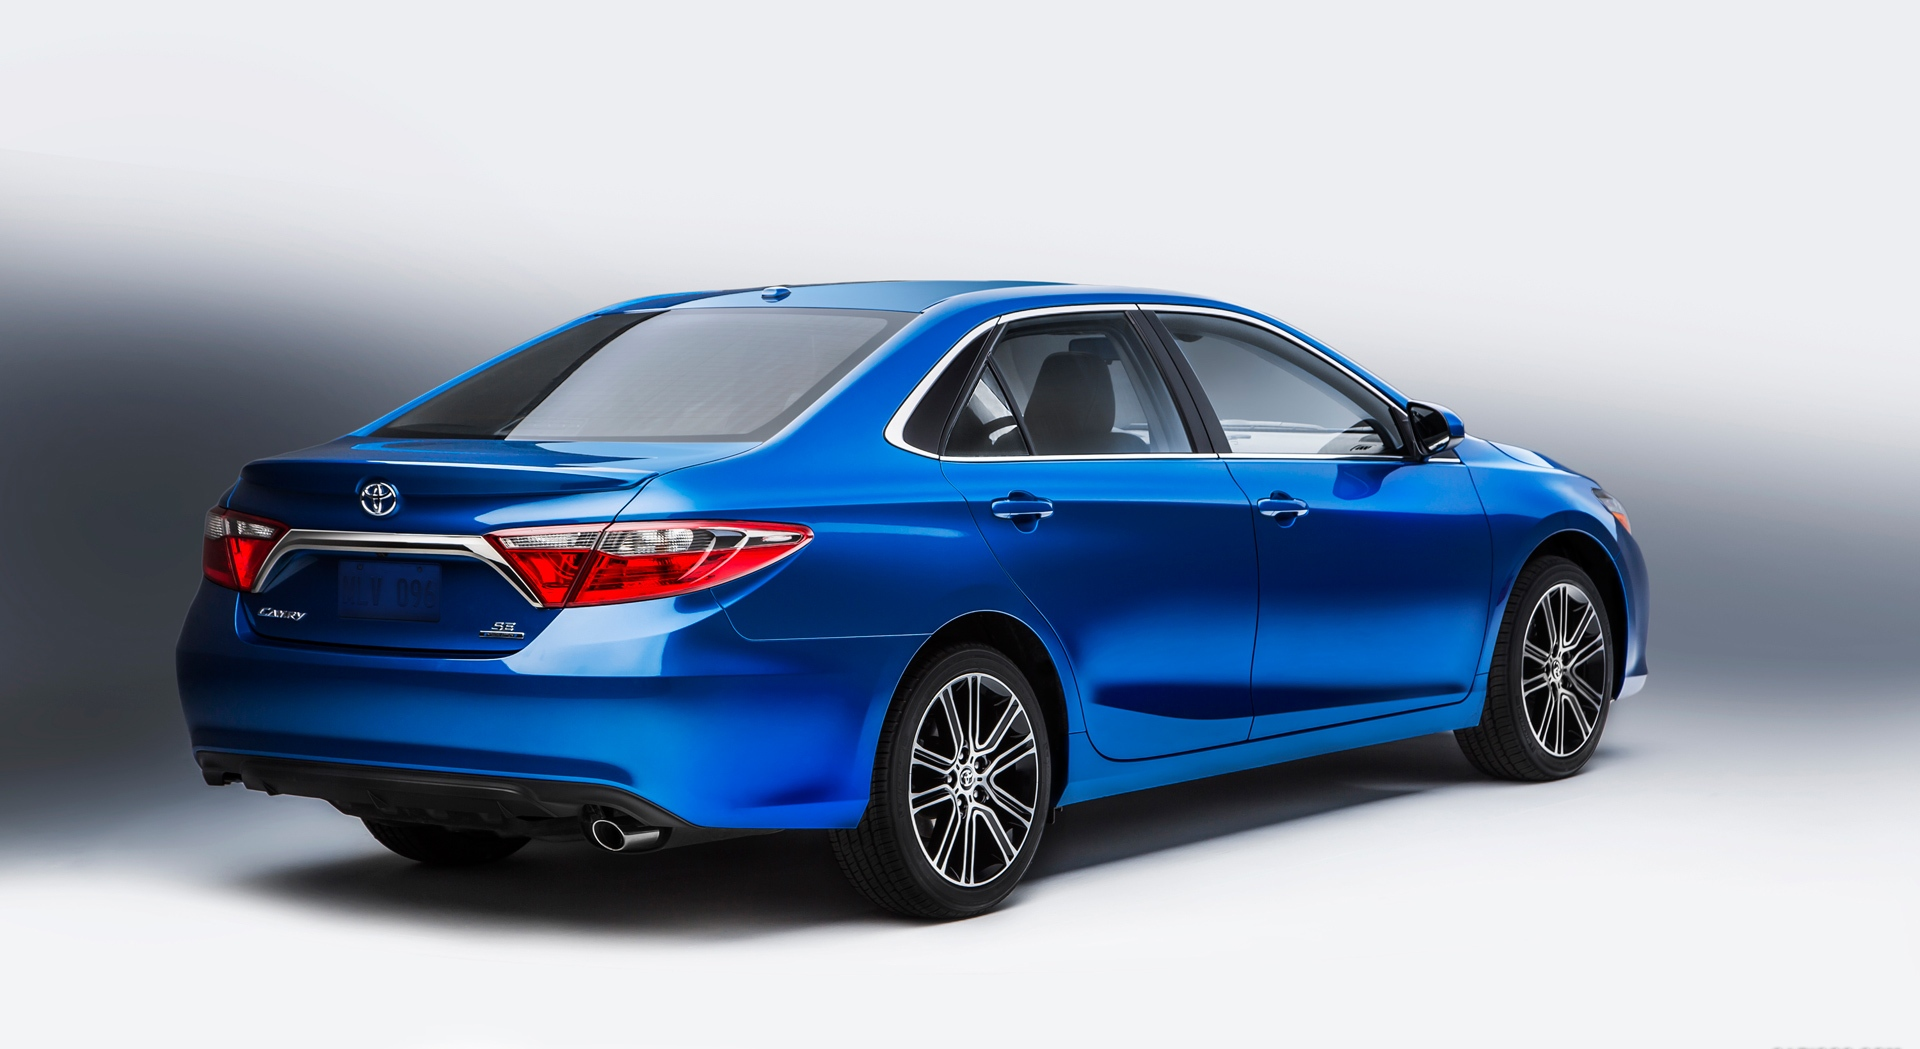 Toyota Camry Wallpapers Archives